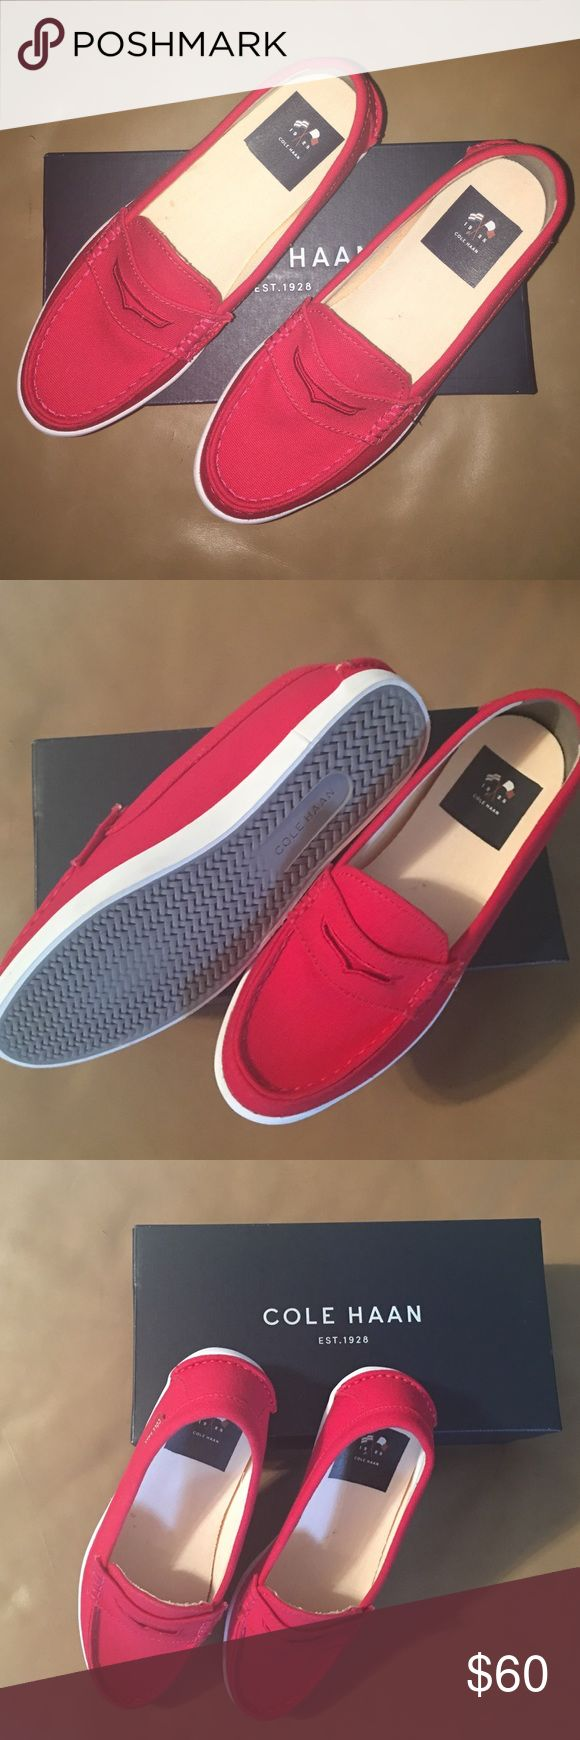 Labor Day Sale‼️Cole hann canvas loafers Cute red loafers! New, never worn, with box! Cole Haan Shoes Flats & Loafers